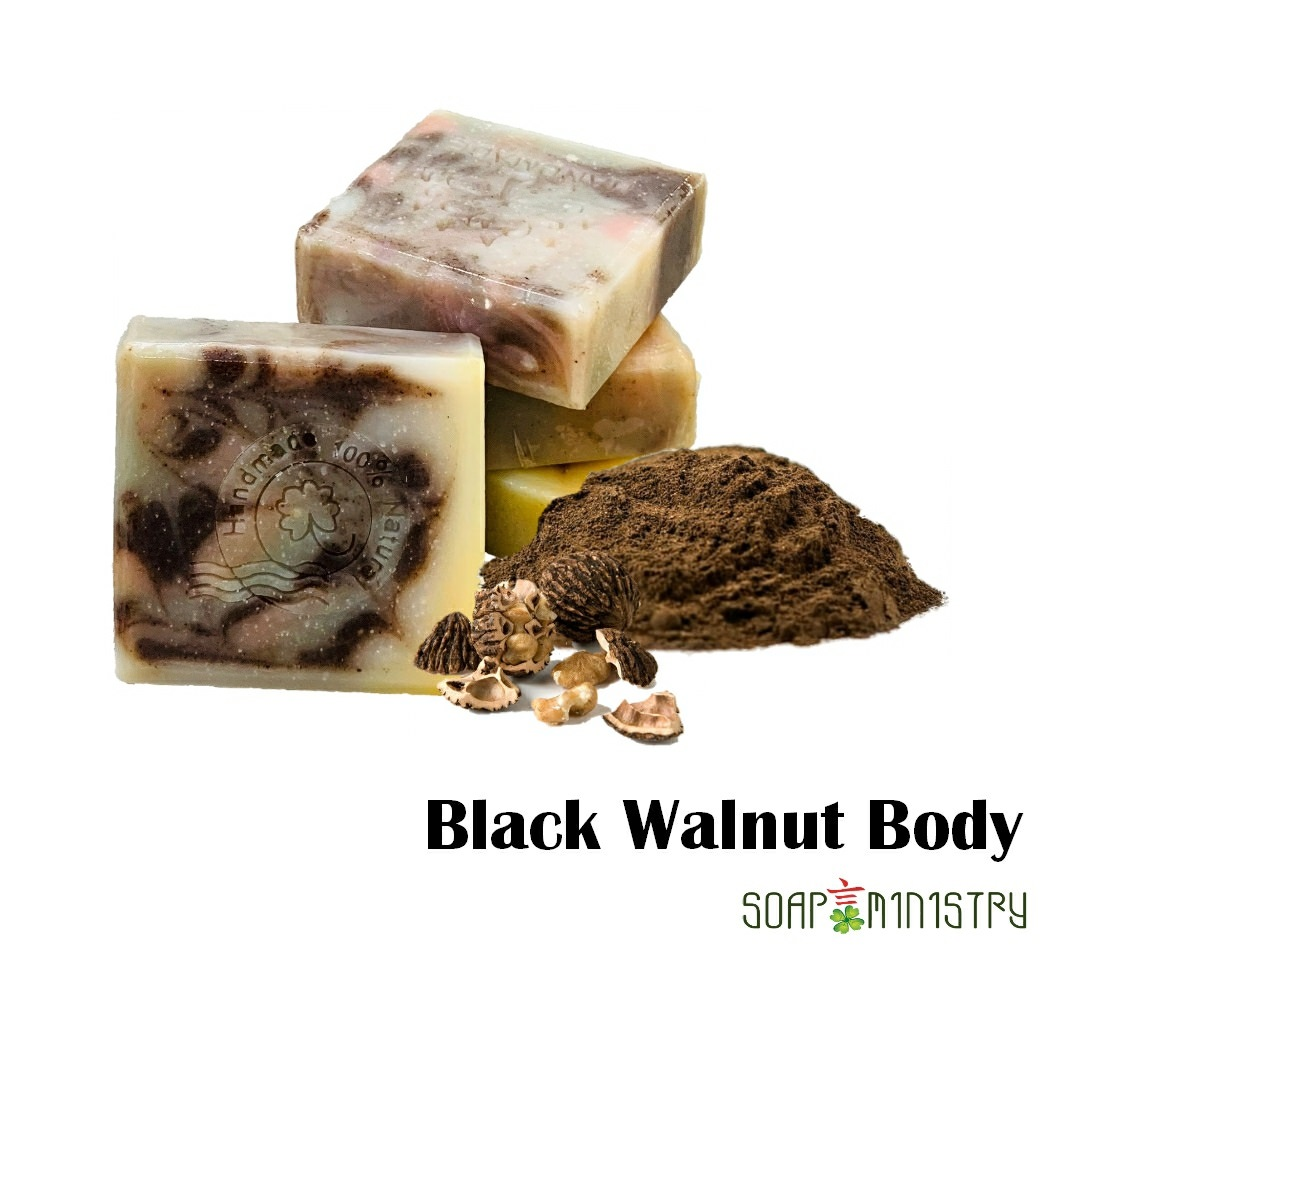 Black Walnut Body Scrub Soap